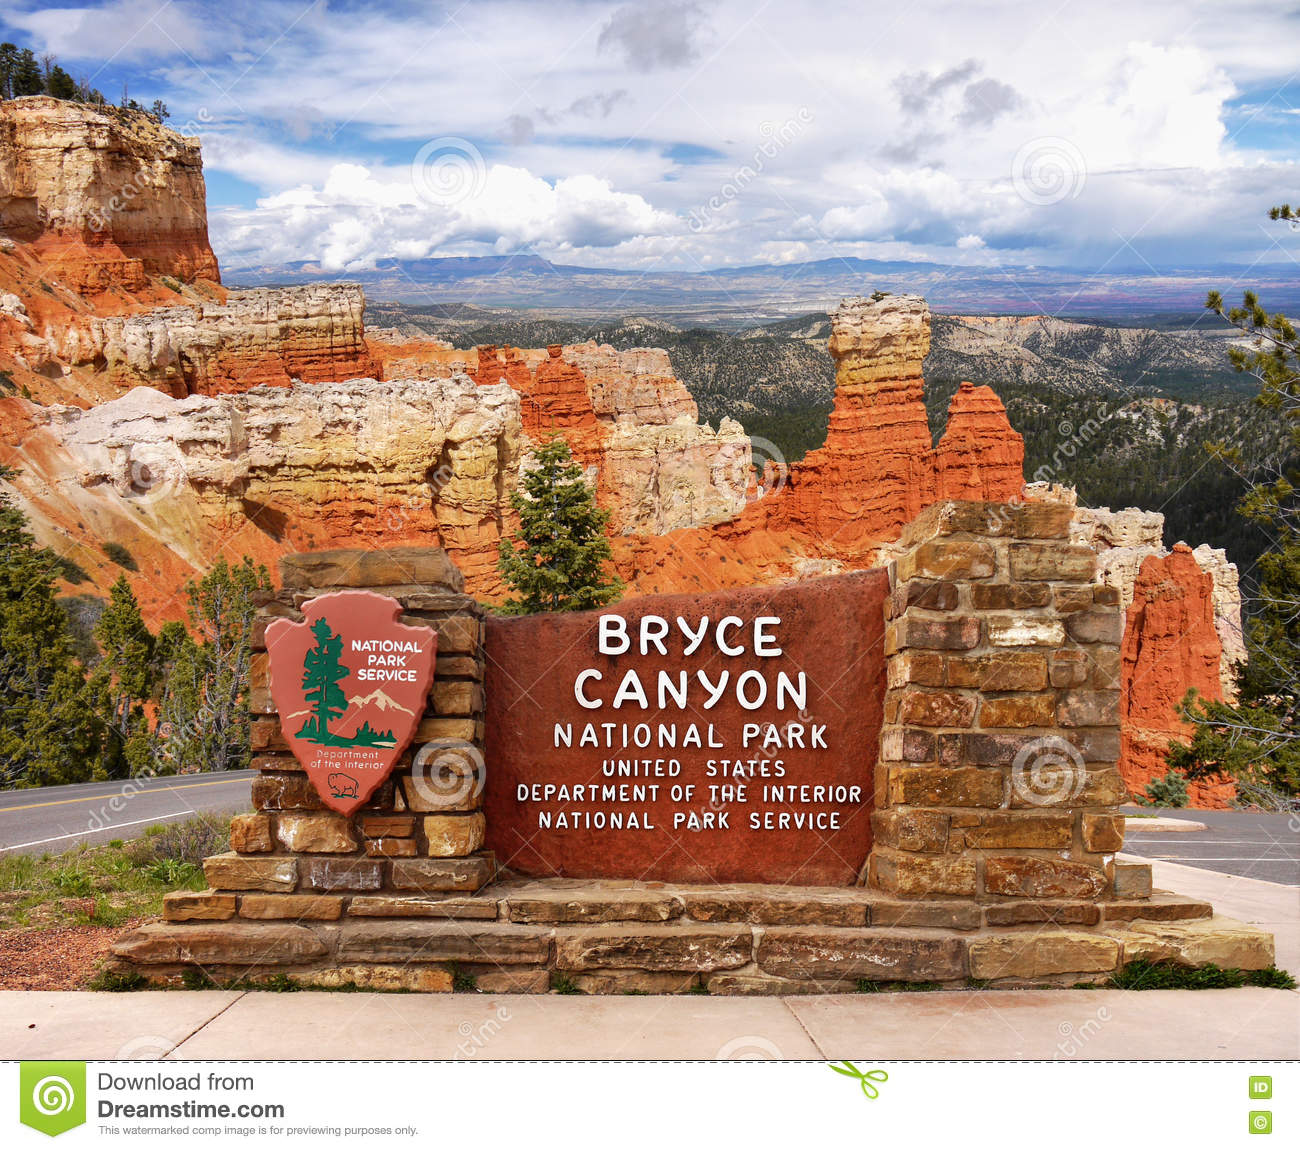 bryce canyon national park gay personals But, unlike the grand canyon or zion national park which are the result of river erosion, bryce resulted from freeze/thaw cycles bryce is located at over 8,000 feet of elevation and is subject to extreme temperature swings.